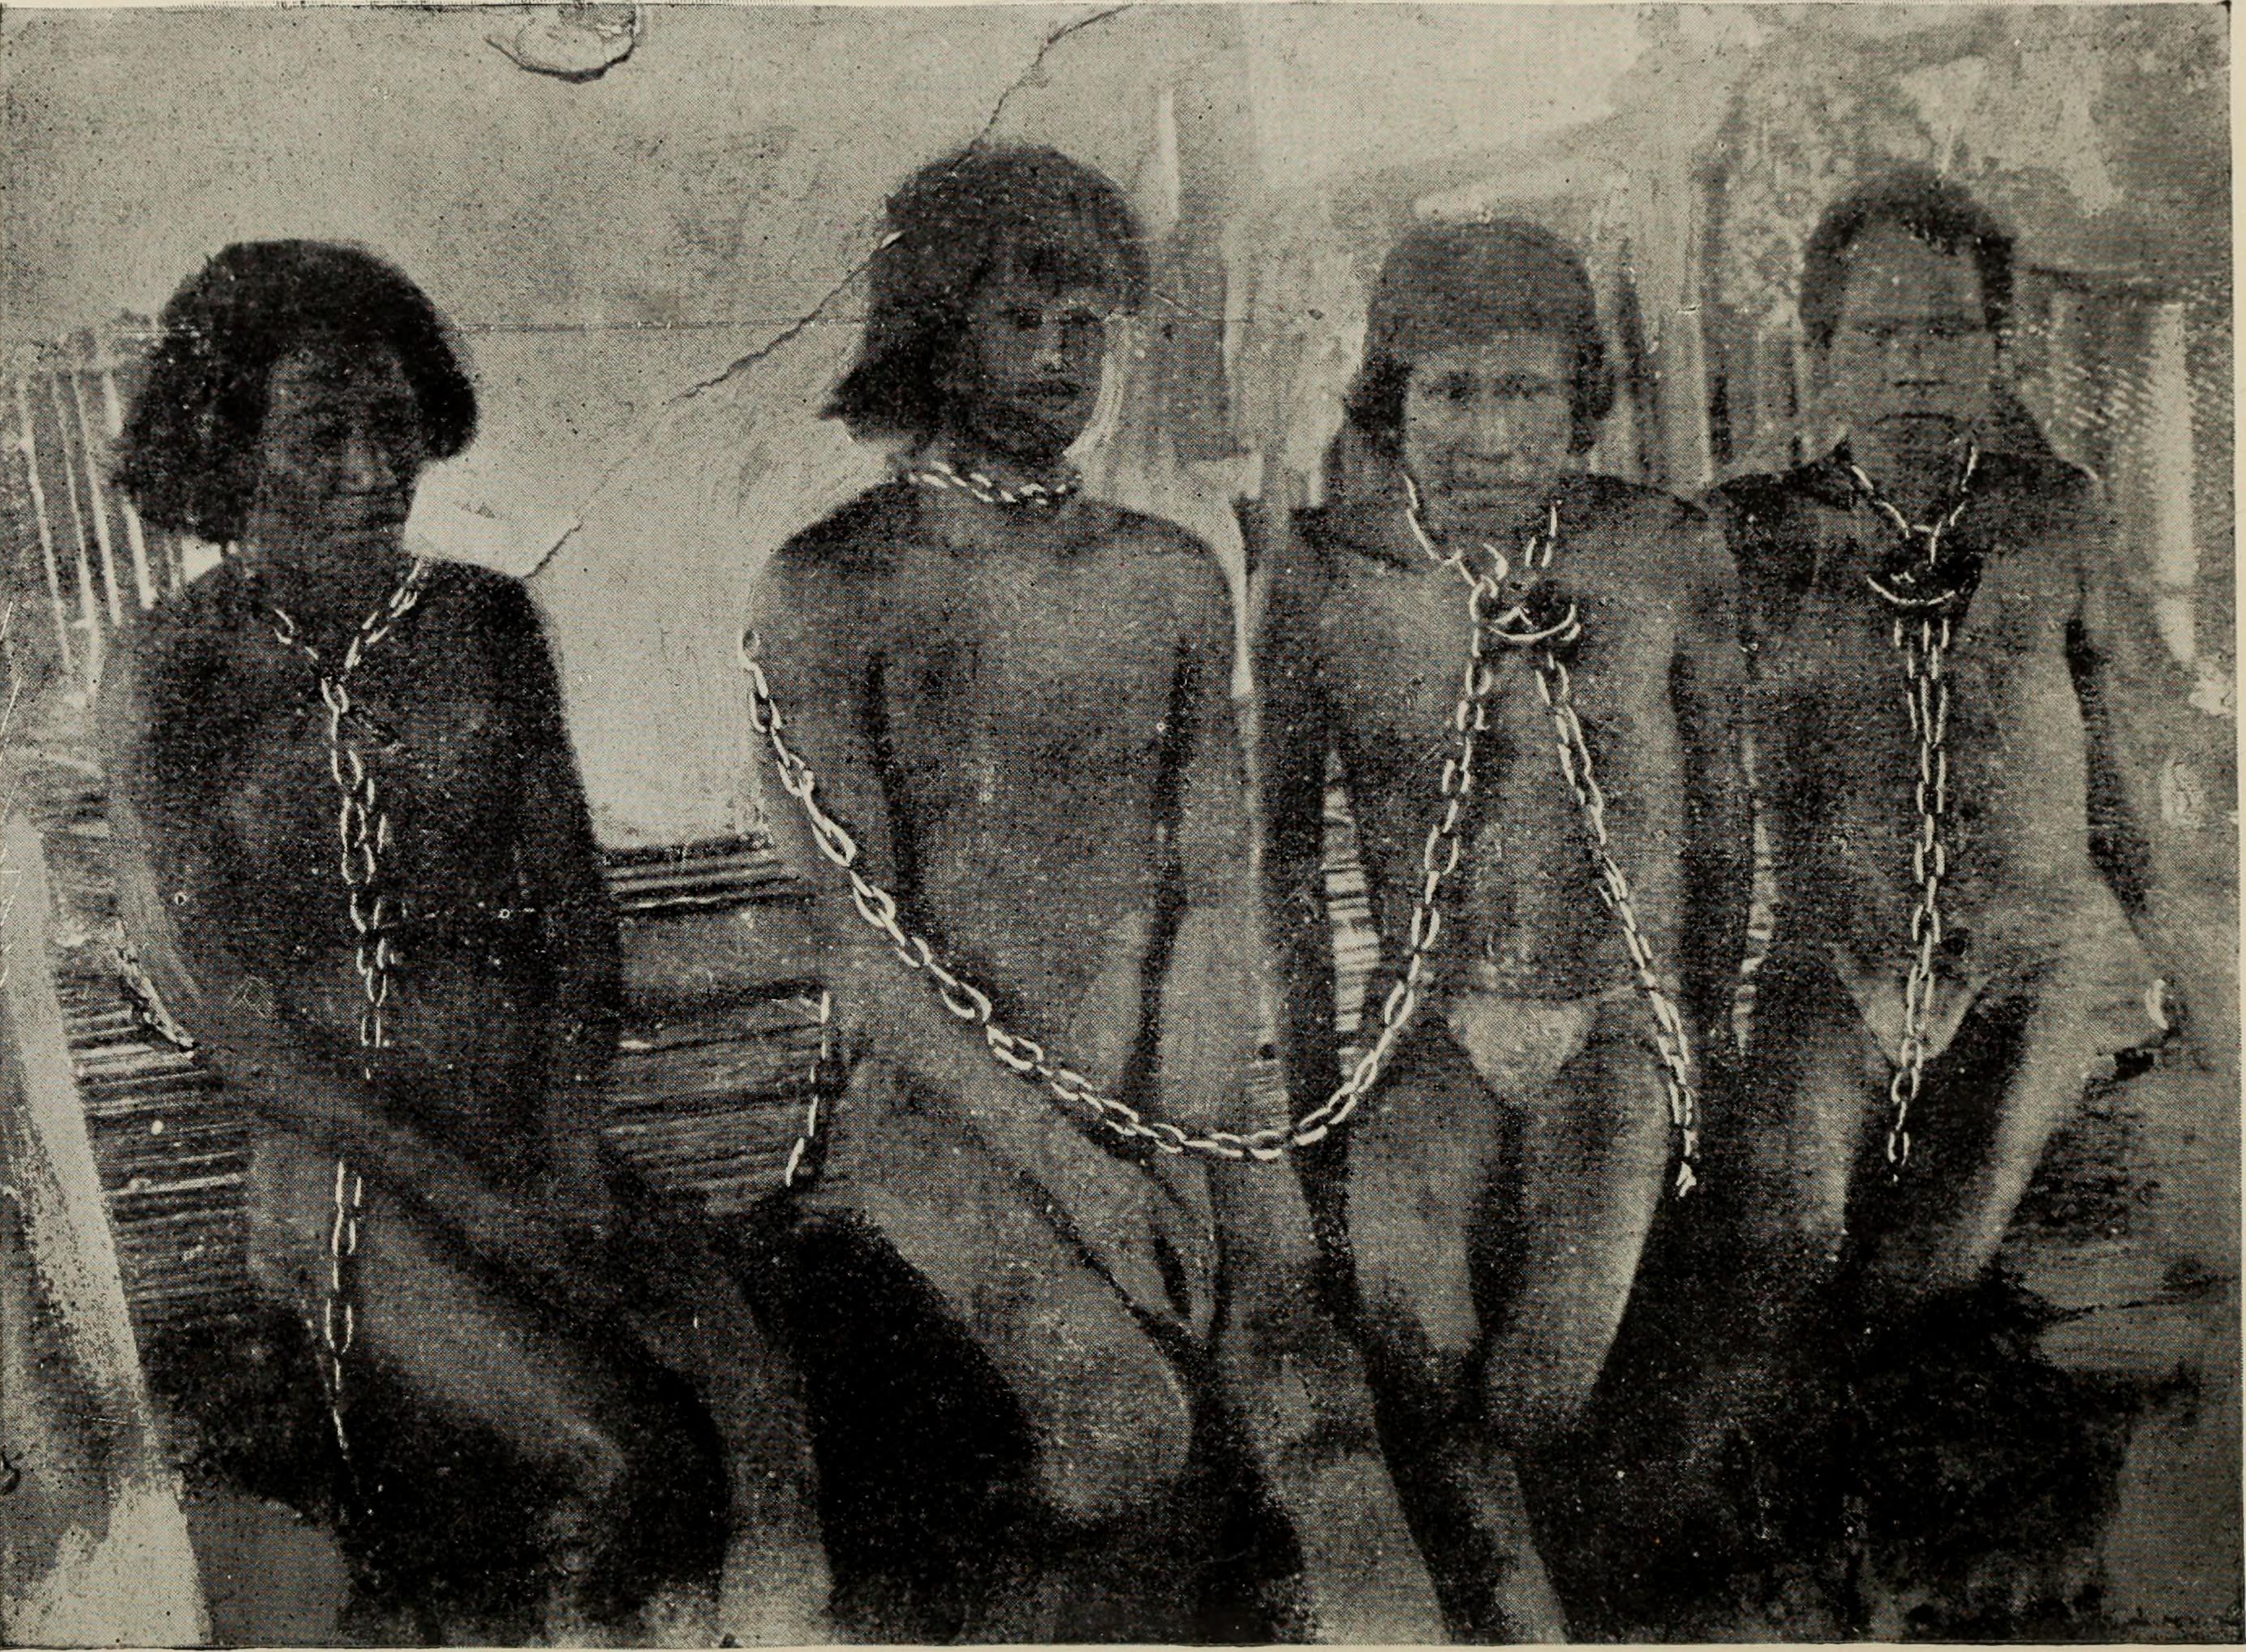 cruelty and violence in the life of a slave